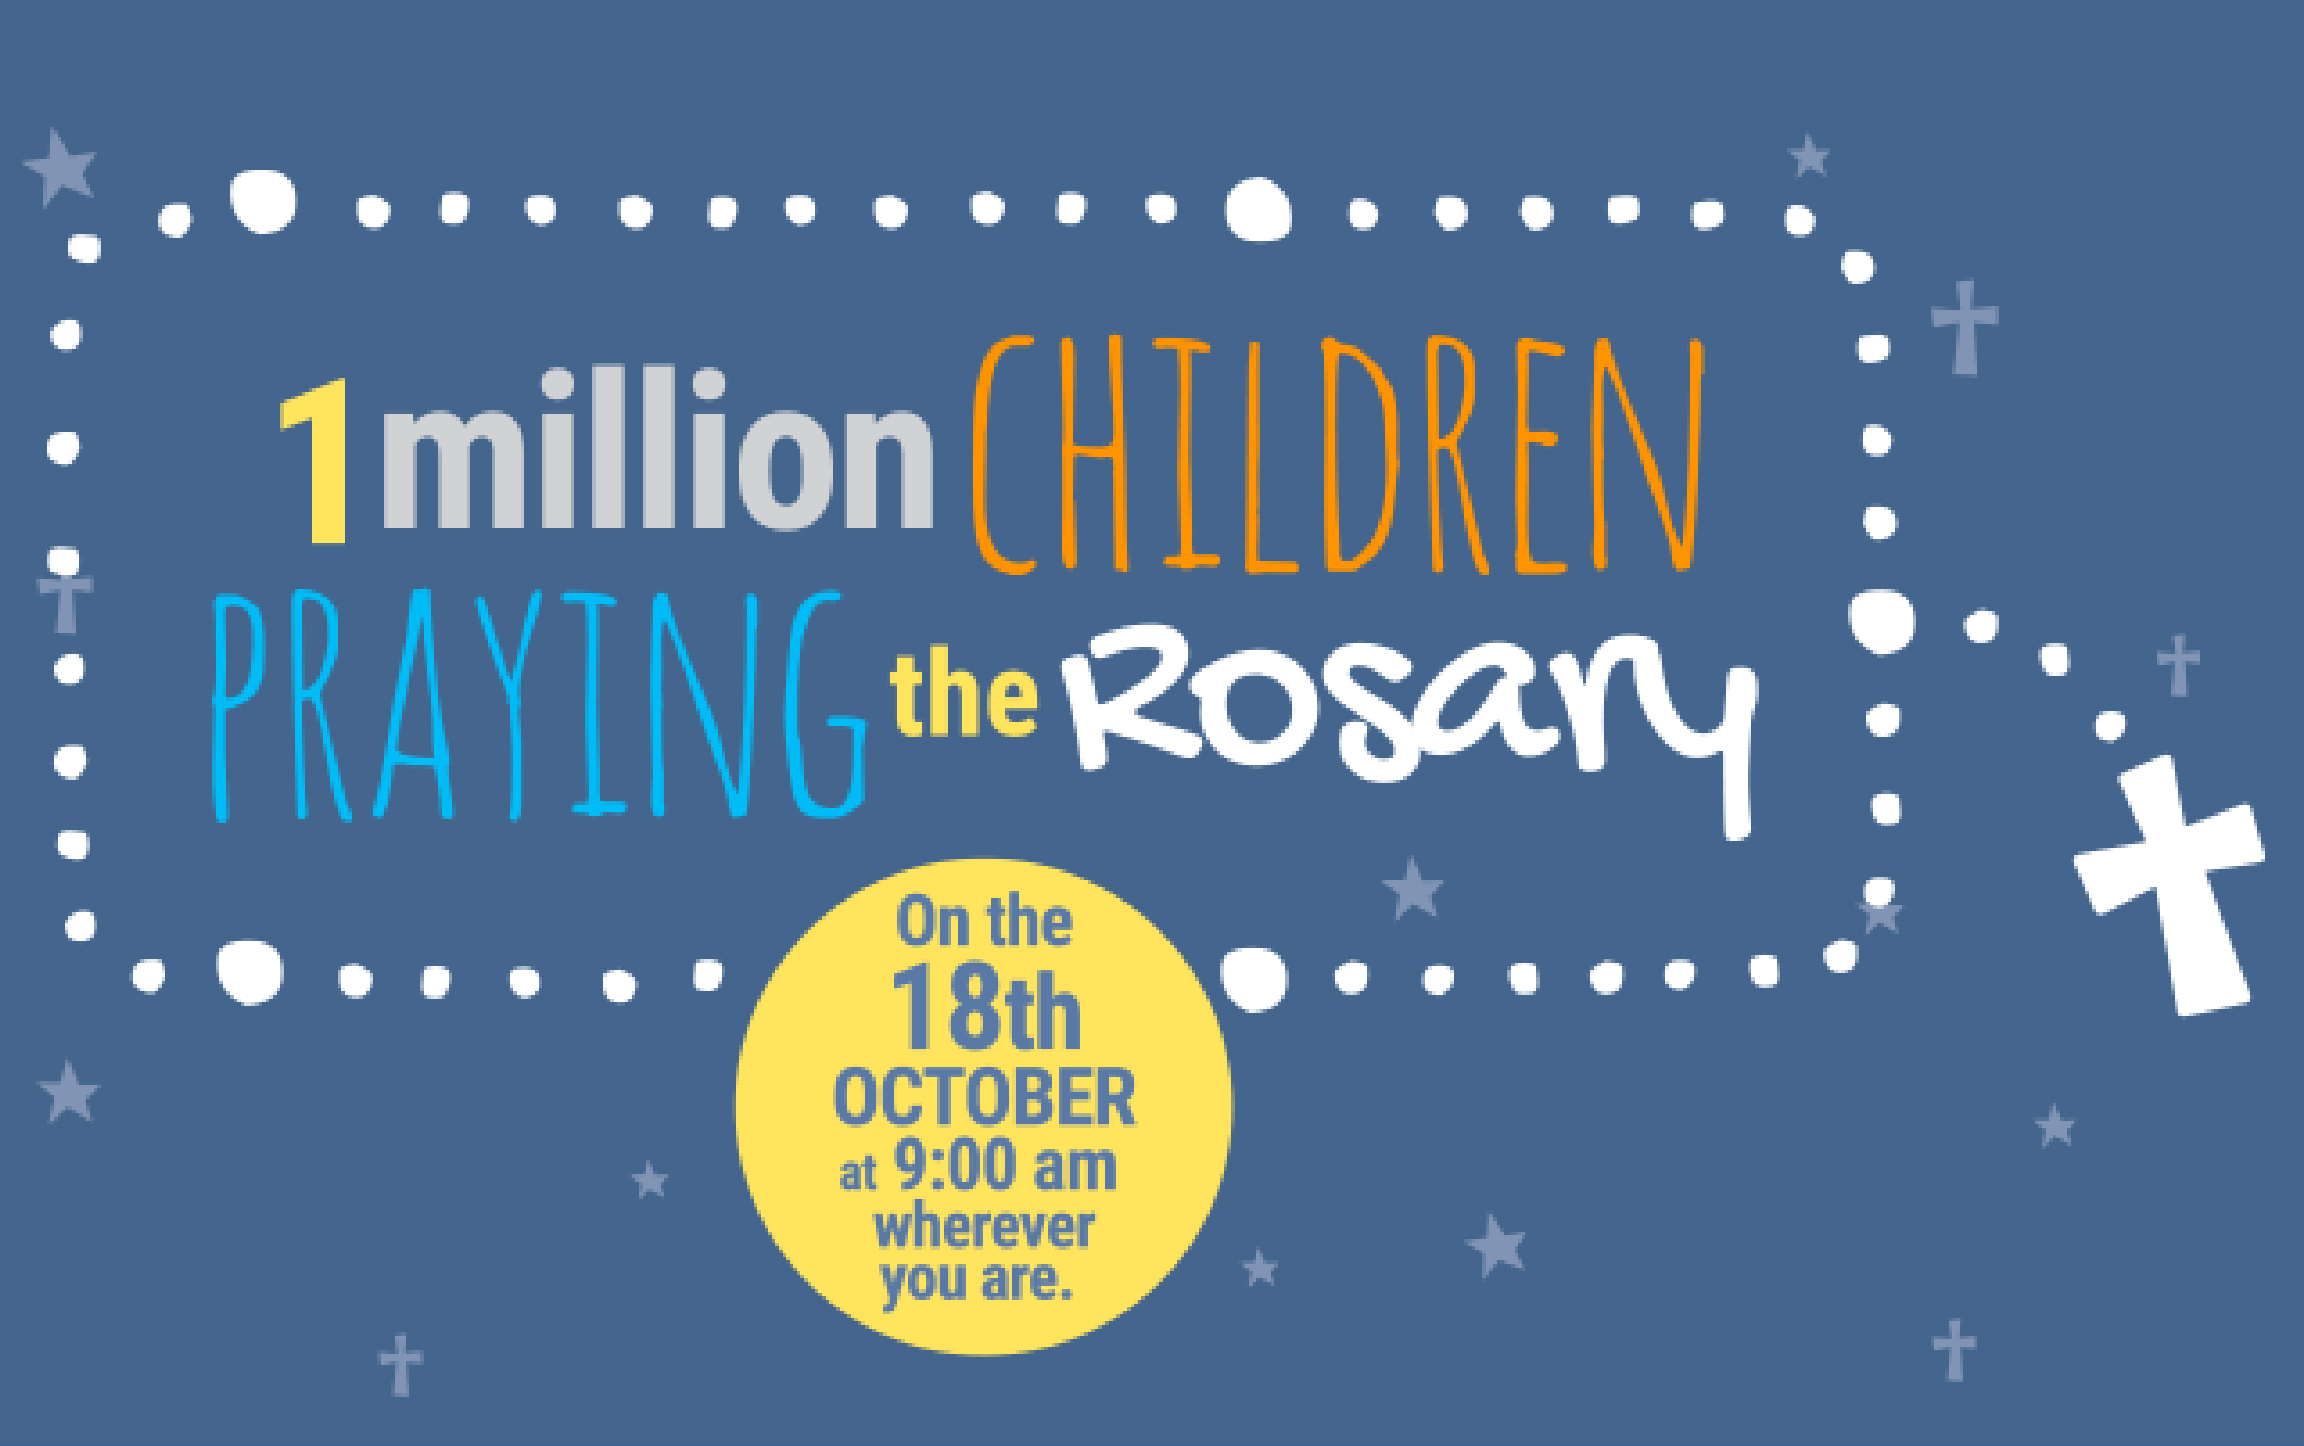 One million children praying the rosary